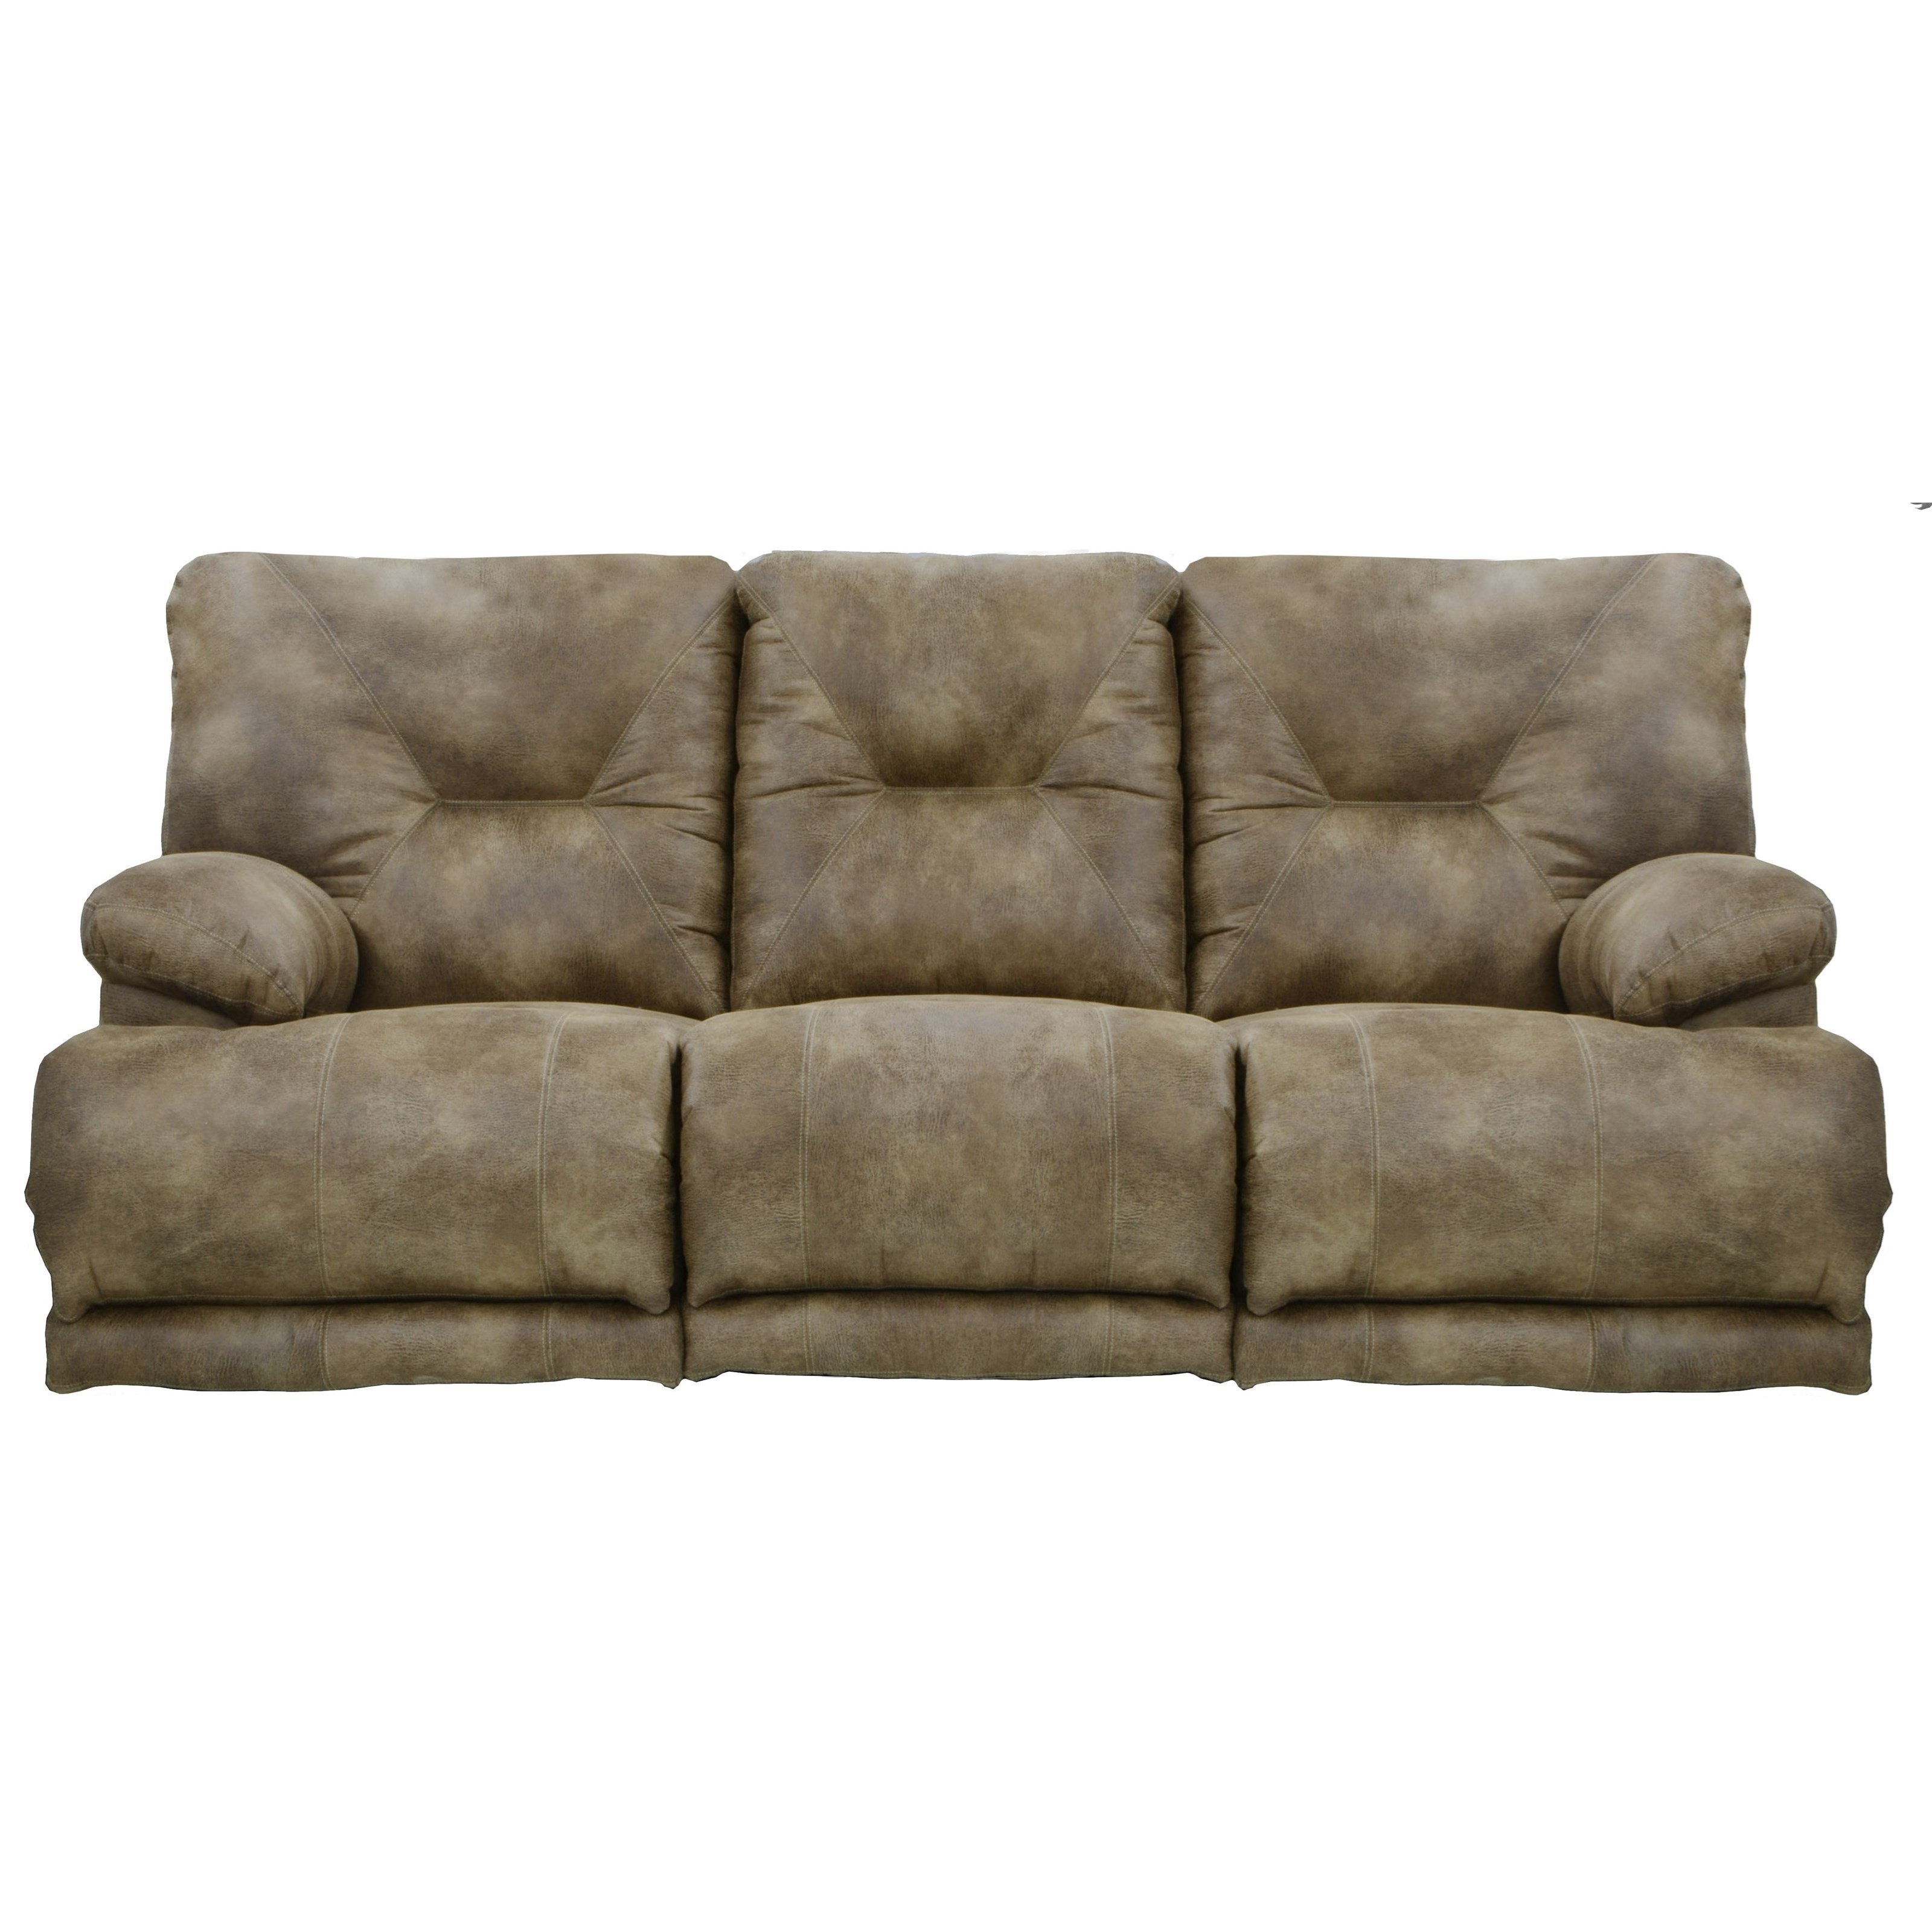 Voyager Lay Flat Reclining Sofa by Catnapper at Standard Furniture